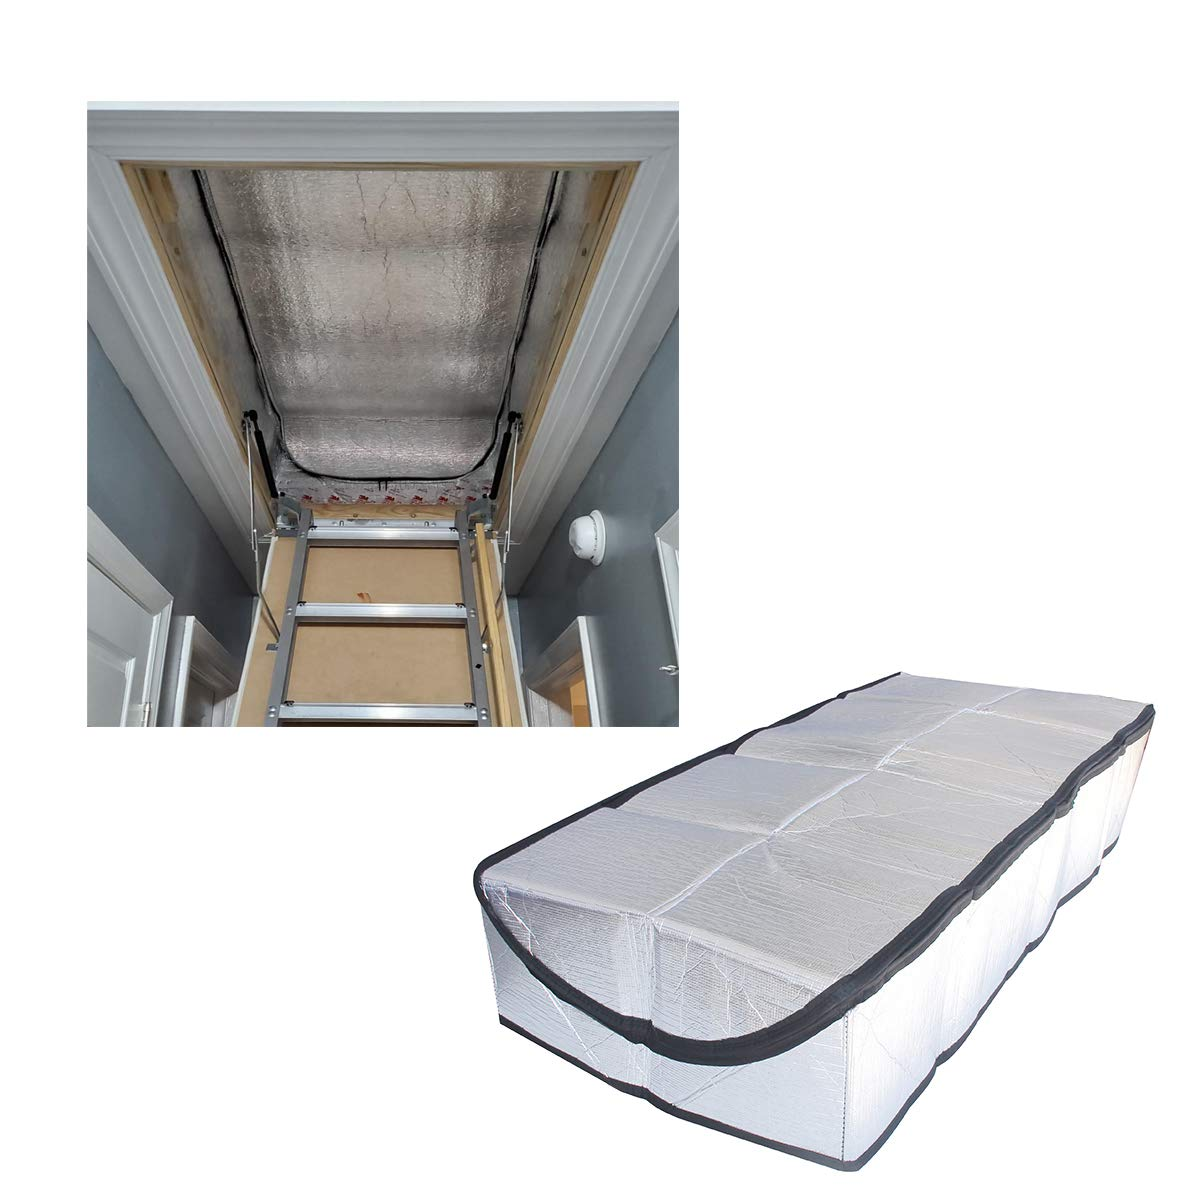 Attic Stairway Insulation Cover - Premium Energy Saving Attic Stairs Door Ladder Insulator Pull Down Tent with Zipper 25 in x 54 in x 11In by DGSL